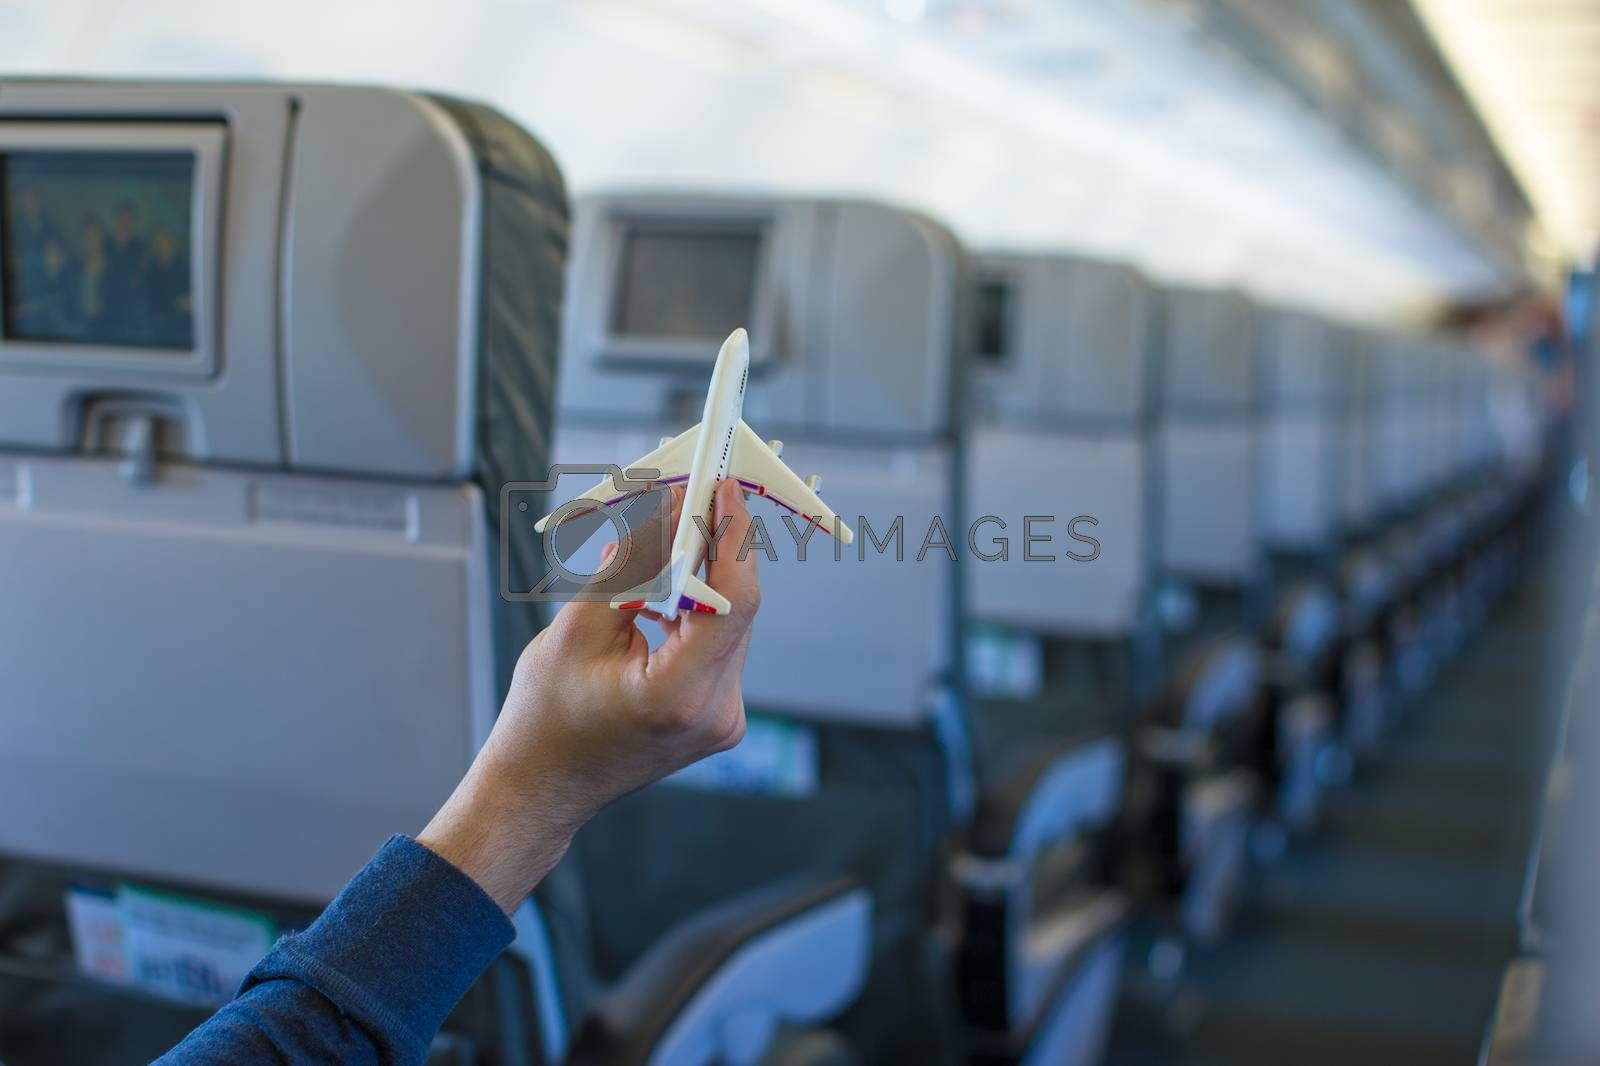 Close up hand holding an airplane model inside a aircraft